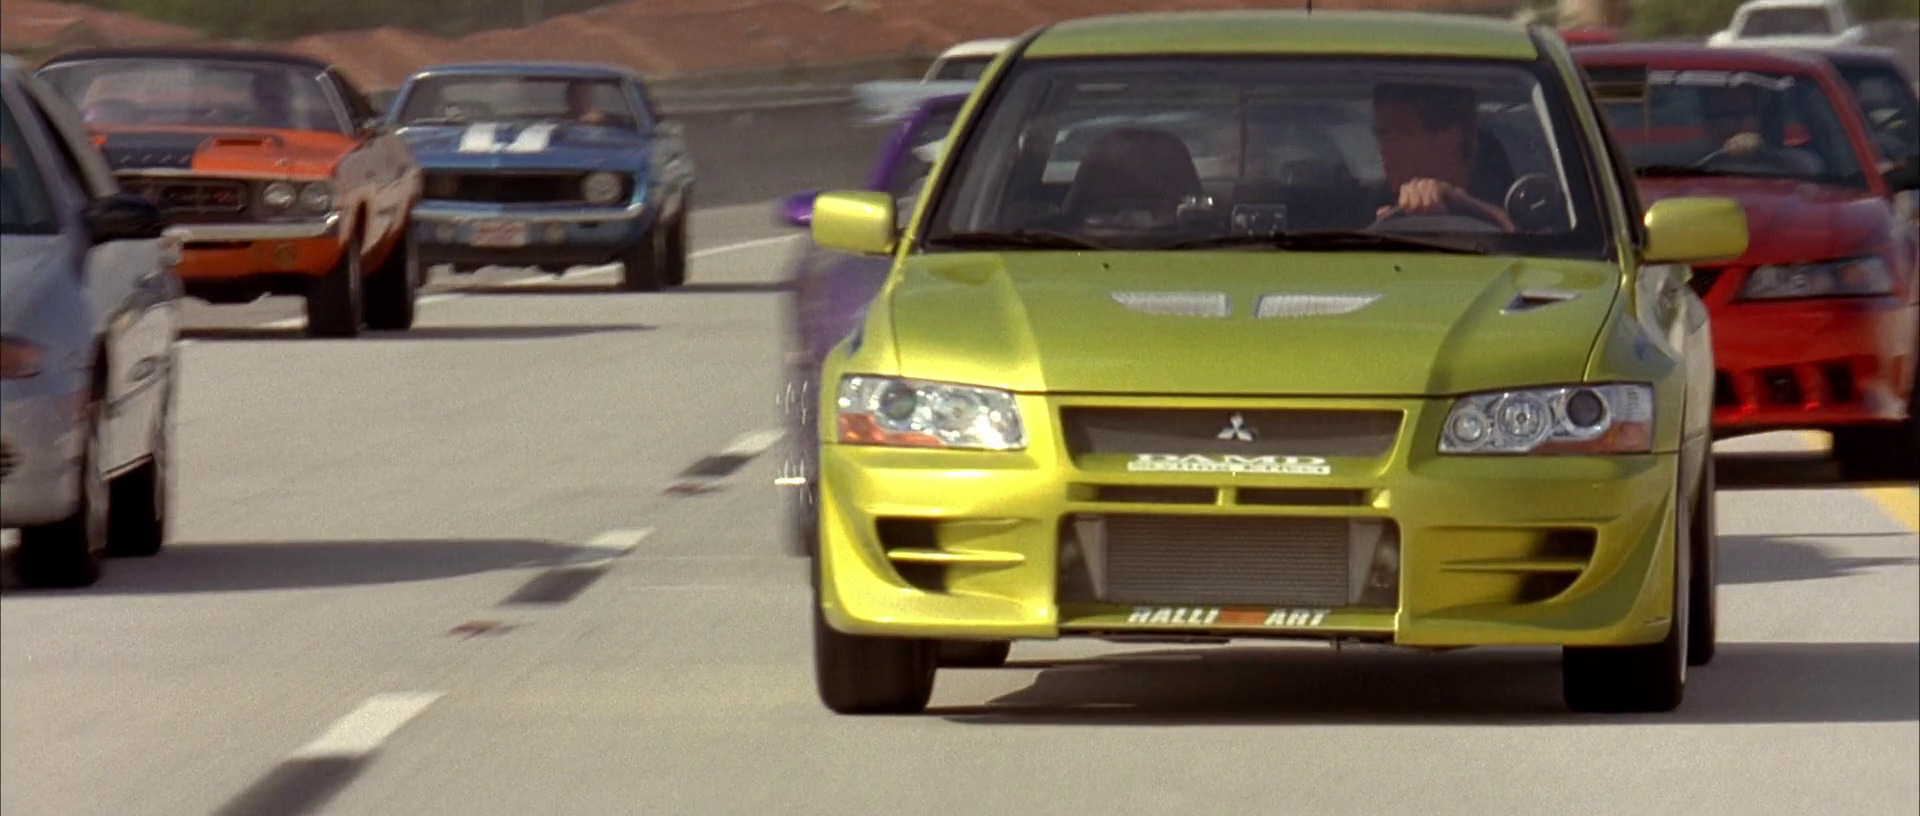 Image - Lancer Evo VII - Front View.png | The Fast and the Furious Wiki | FANDOM powered by Wikia